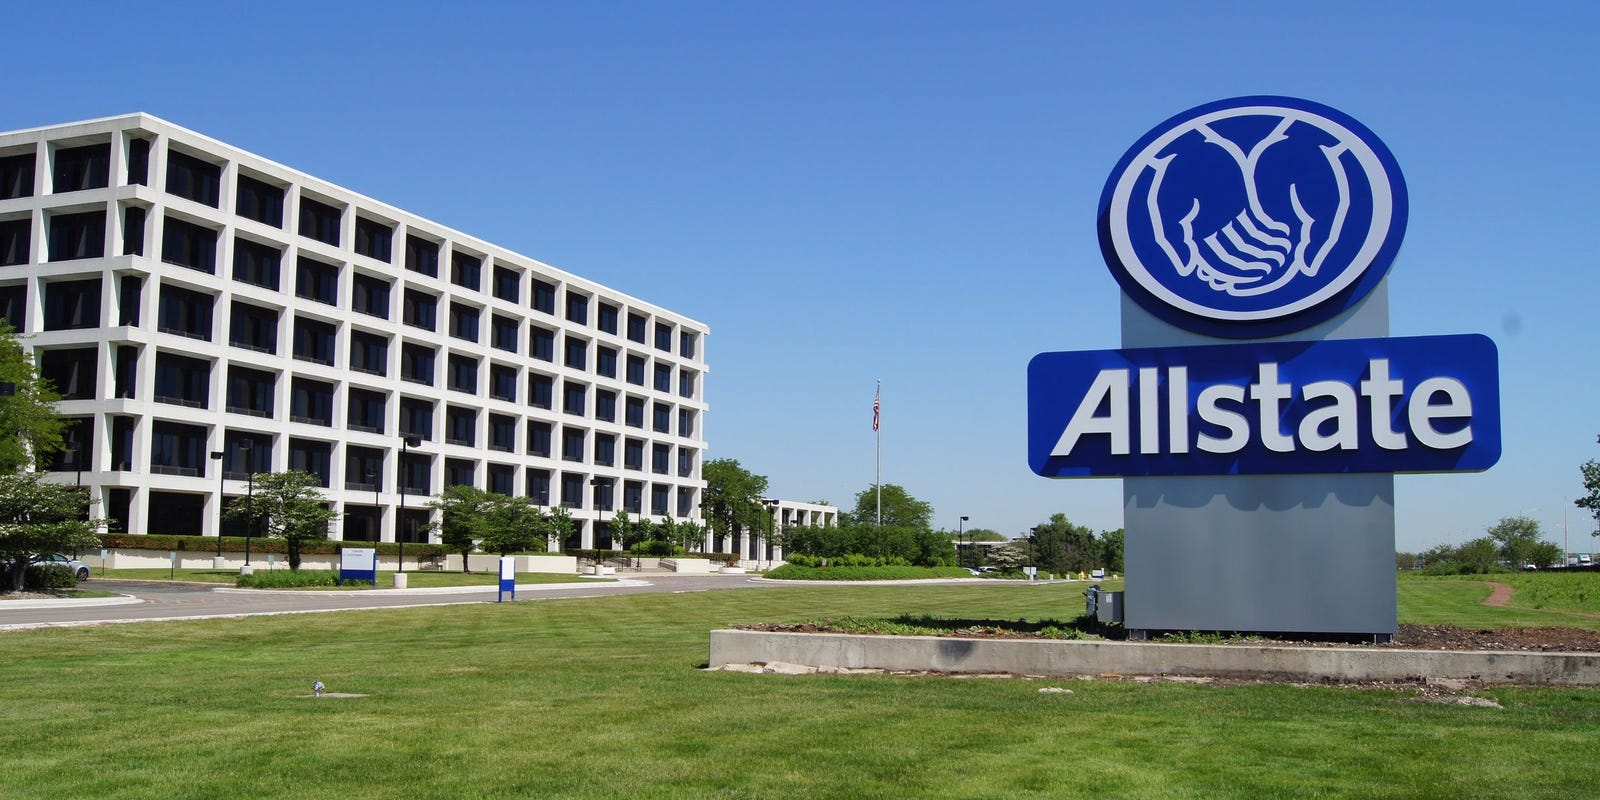 Coronavirus relief: Allstate to extend customer refunds for insurance policies through June